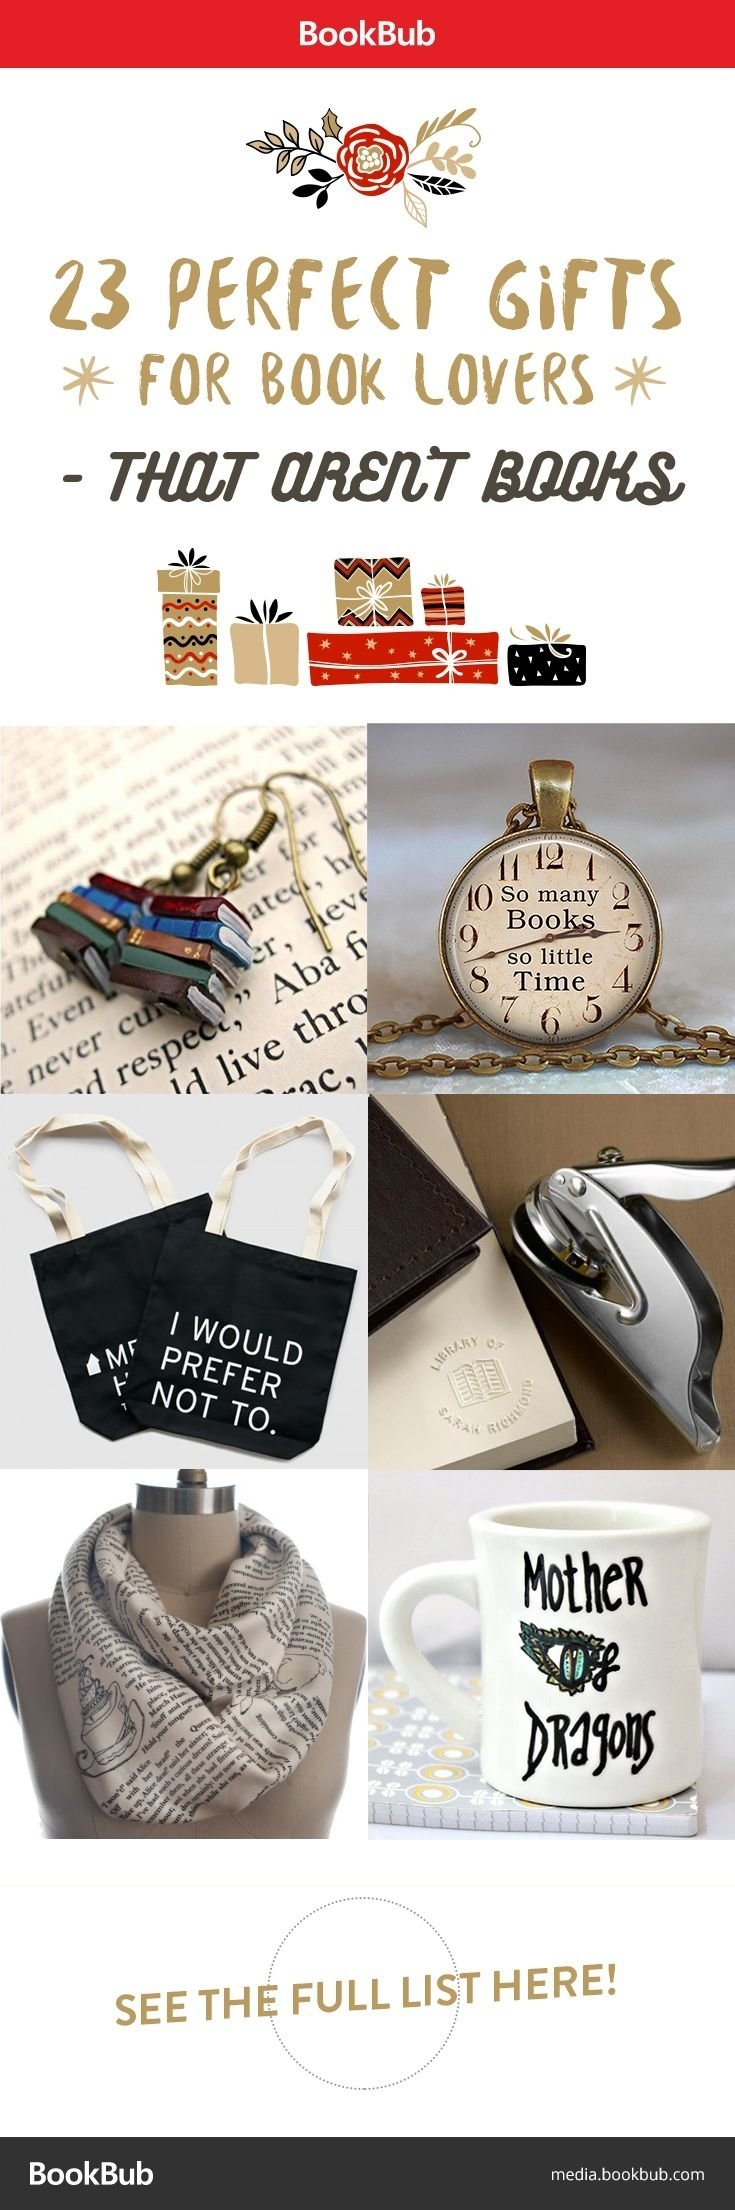 10 Spectacular Gift Ideas For Book Lovers 323 best gift ideas for book lovers images on pinterest book worms 2020